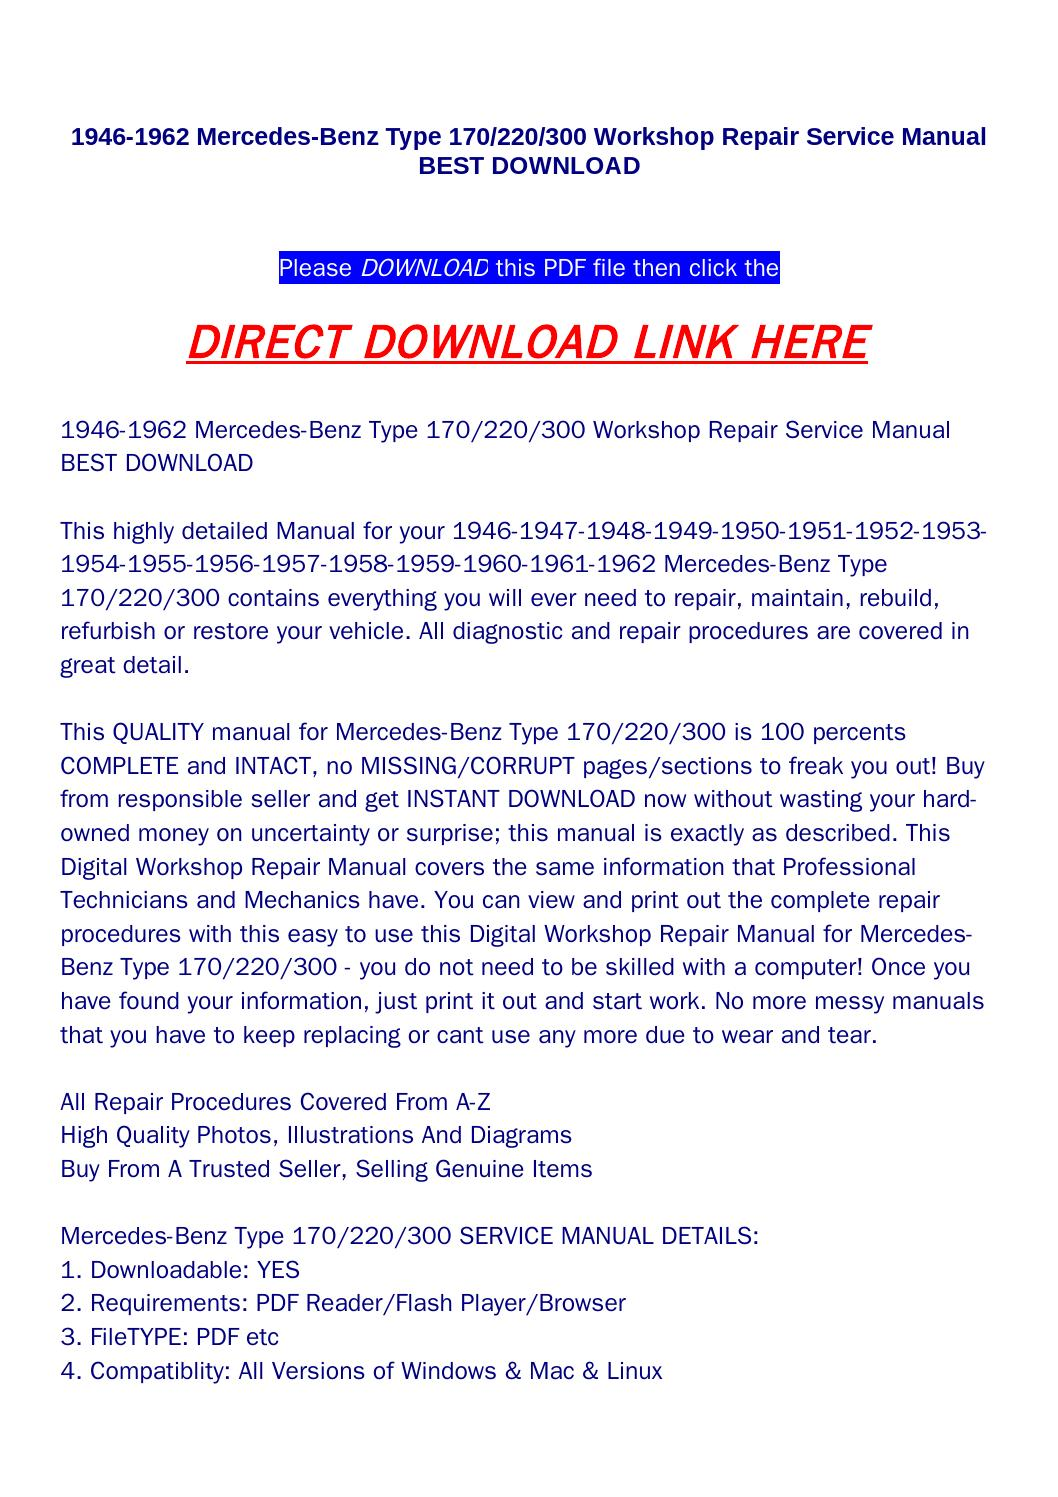 1946 1962 Mercedes Benz Type 170 220 300 Workshop Repair Service 1958 Wiring Diagram Manual Best Download By Rock Pagelargecom Issuu